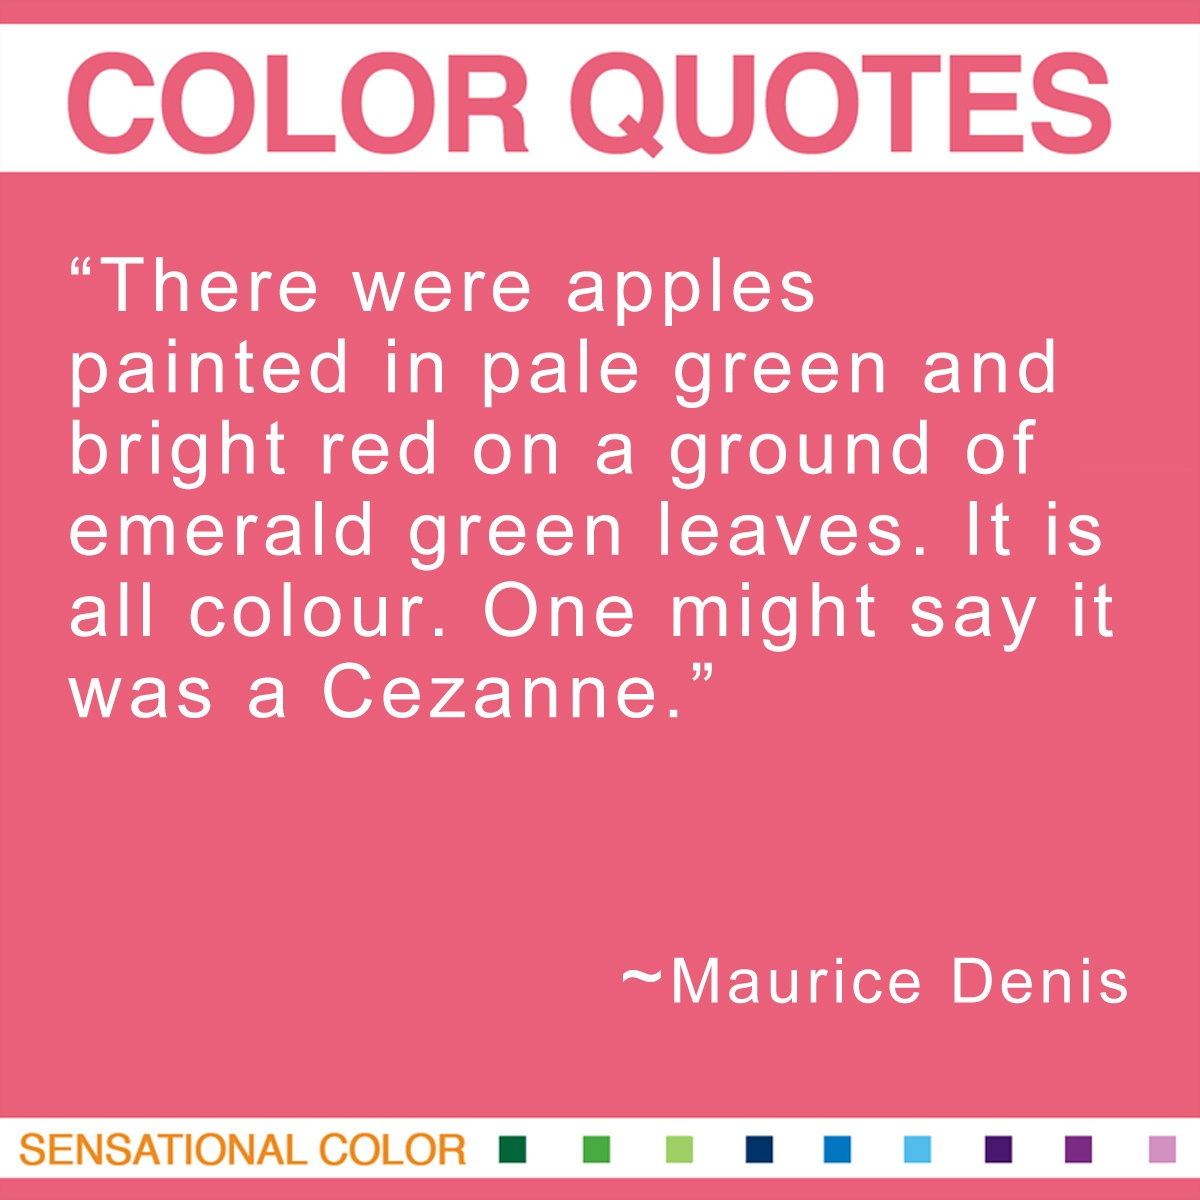 """There were apples painted in pale green and bright red on a ground of emerald green leaves.It is all colour. One might say it was a Cezanne."" - Maurice Denis"